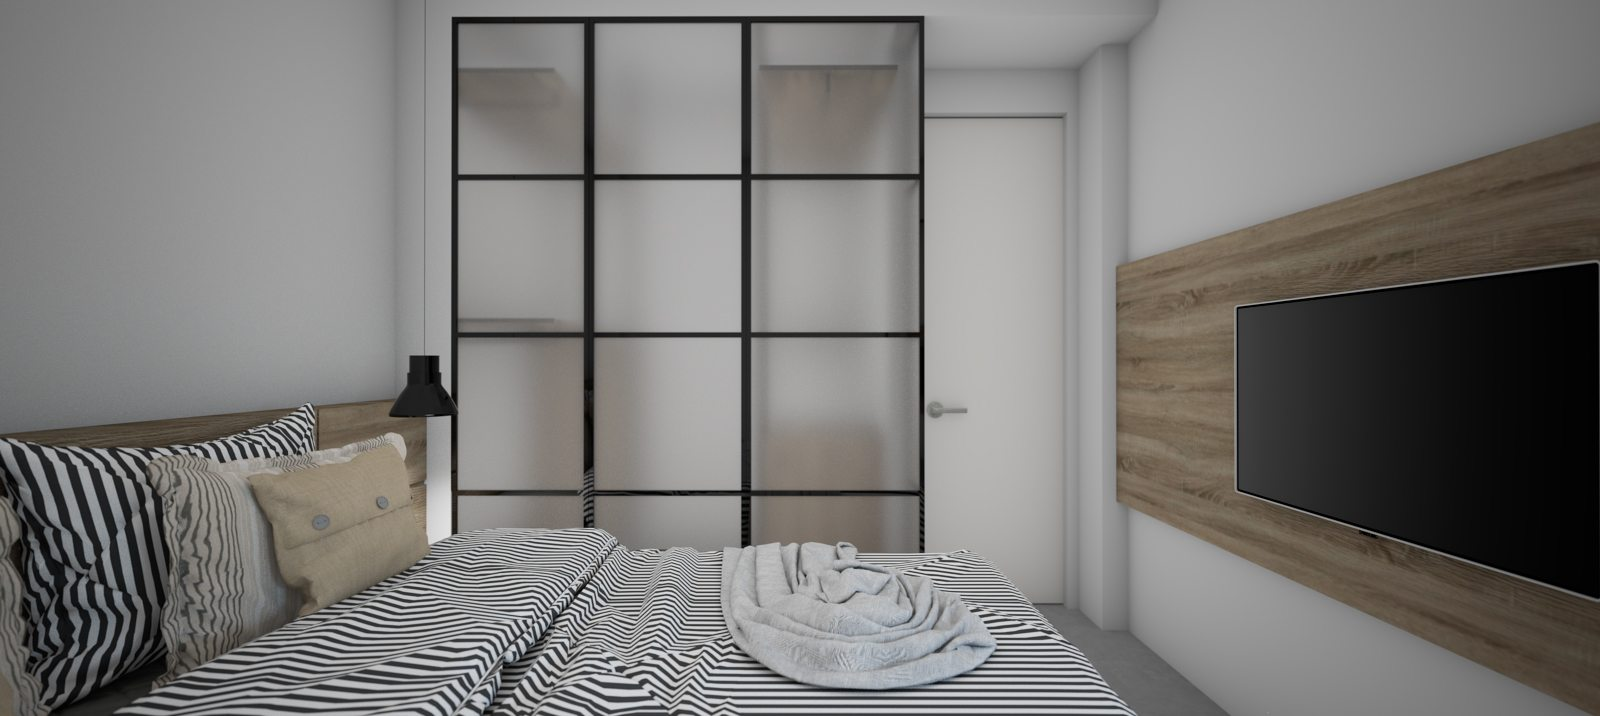 archicostudio_house-ts05_bed1